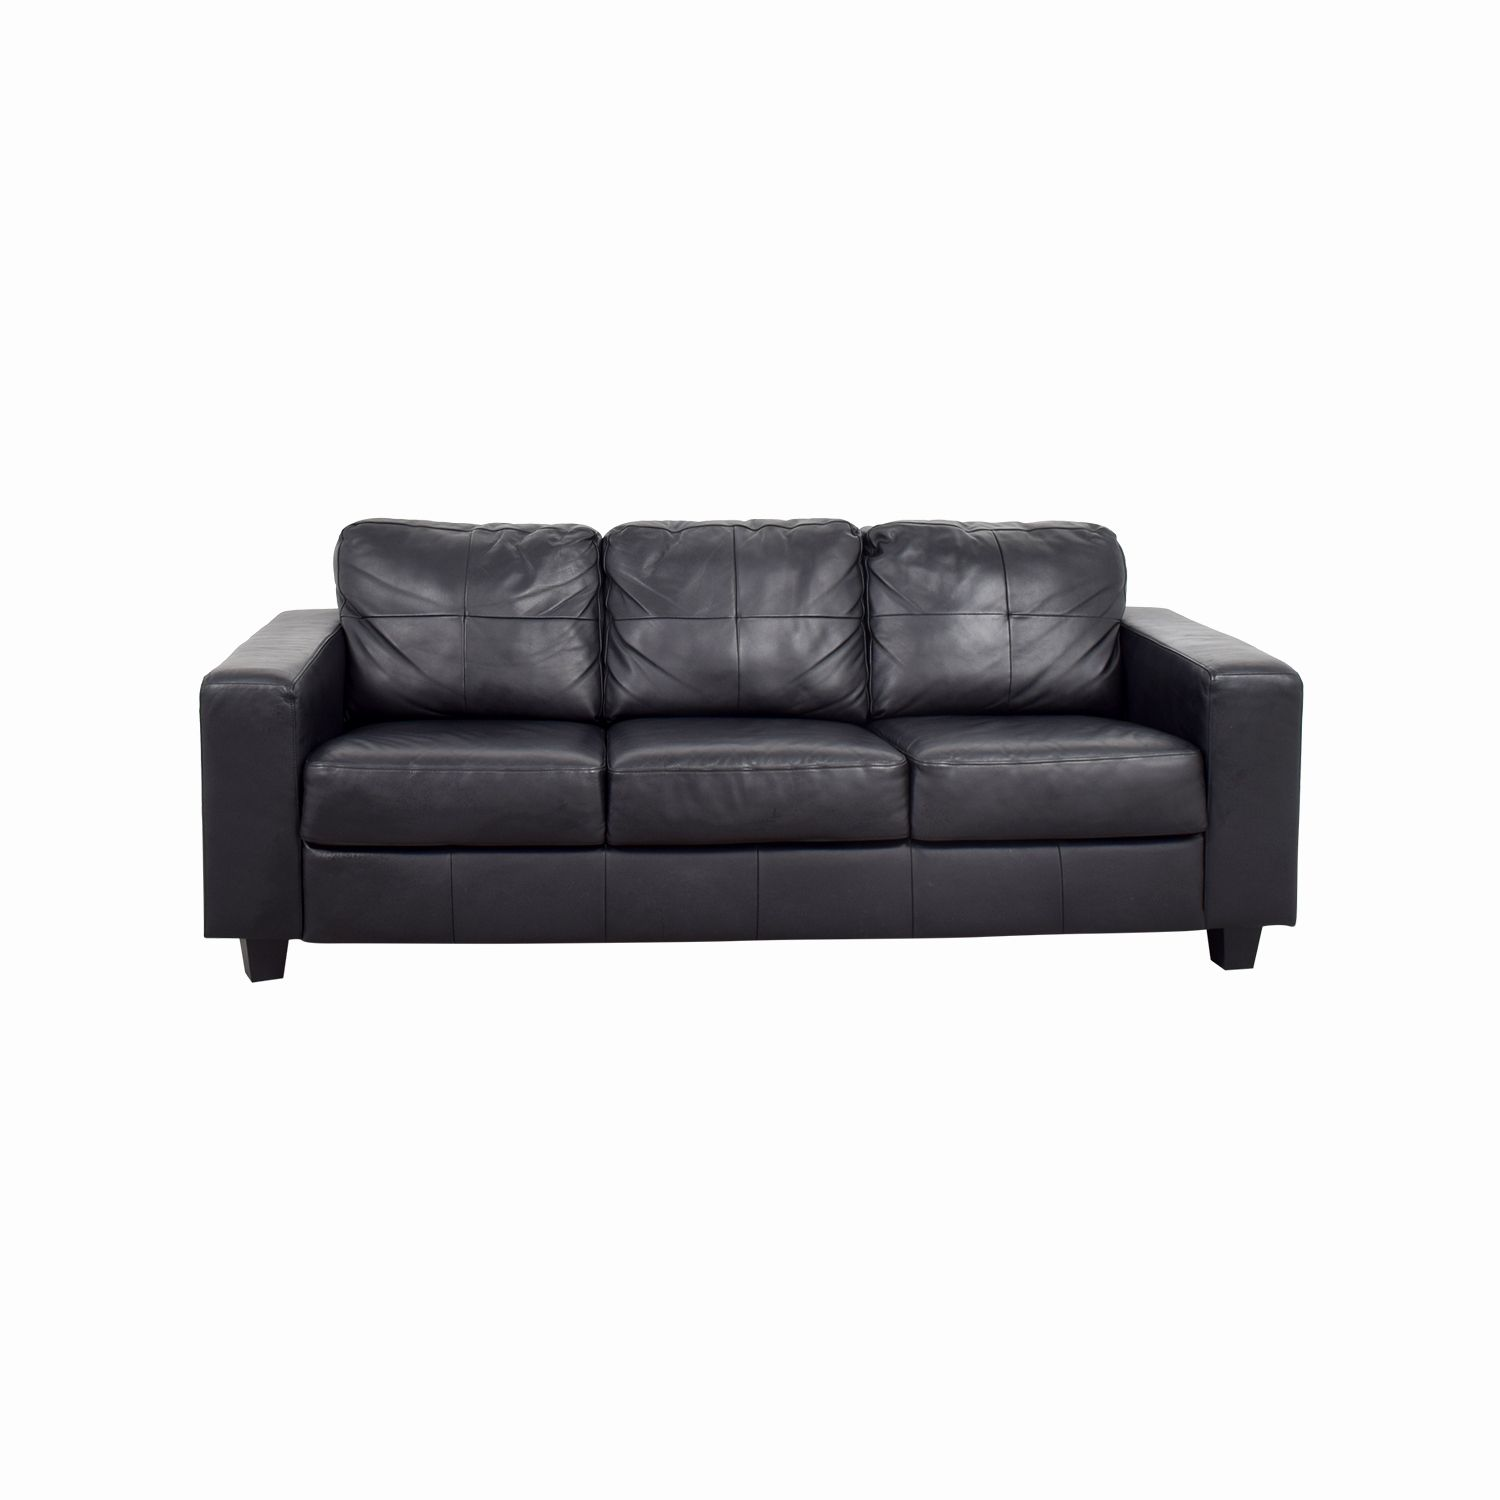 Beautiful Ikea Sofa Leather Pictures 44 Off Ikea Ikea Skogaby Black Leather Sofa Sofas Black Leather Couch Faux Leather Couch Ikea Sofa